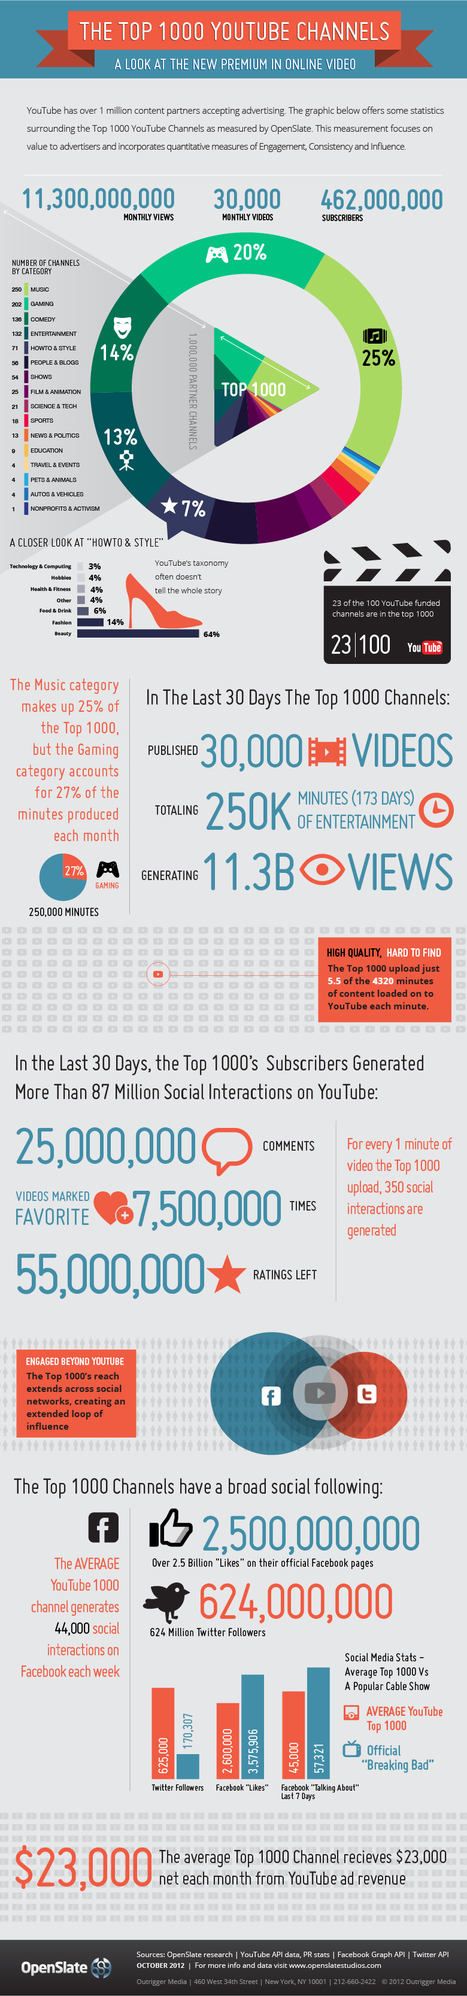 Tumblr Is for Fashion, YouTube Is for Music [INFOGRAPHIC] | MUSIC:ENTER | Scoop.it